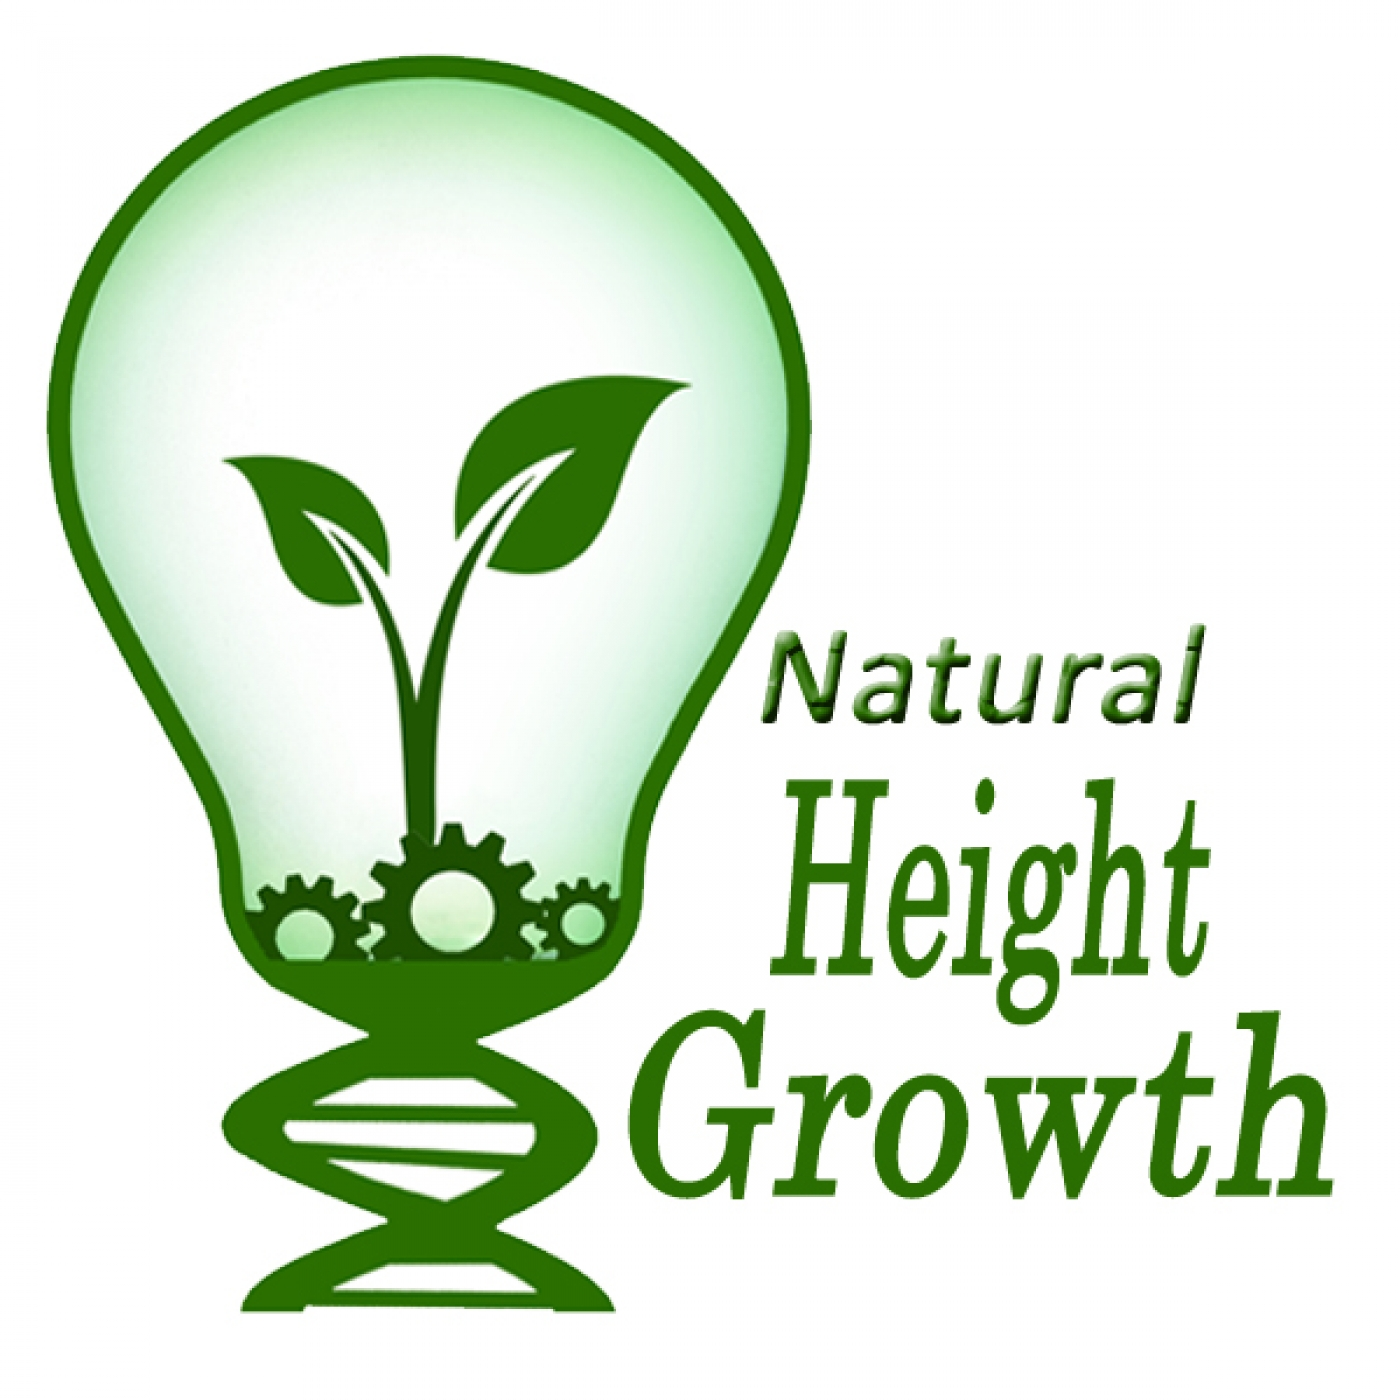 Natural Height Growth